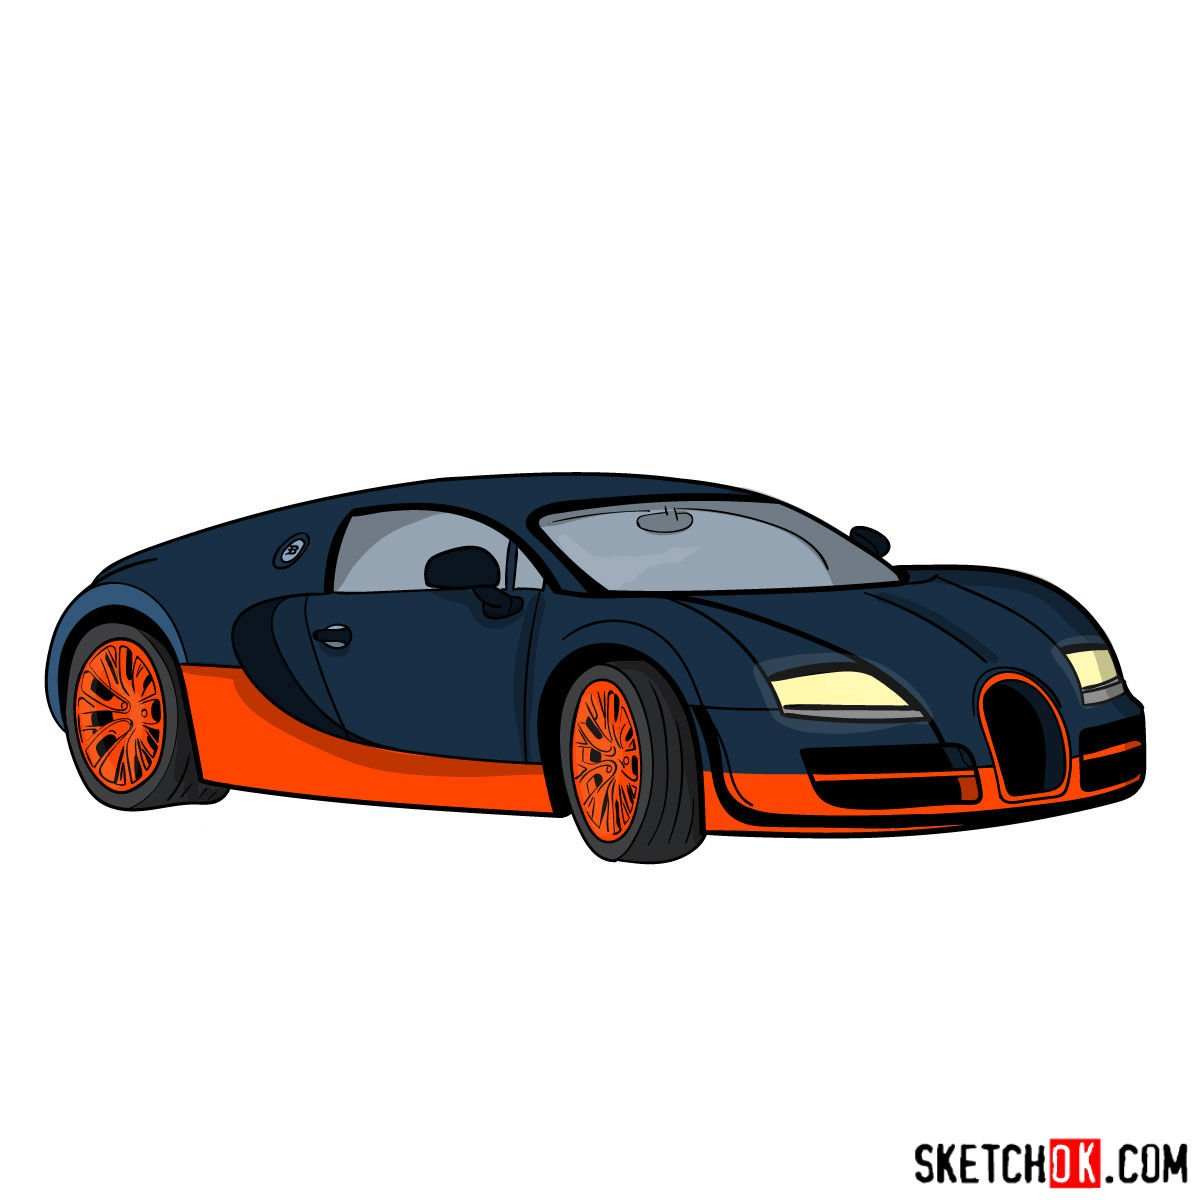 How to draw Bugatti Veyron 16.4 Super Sport